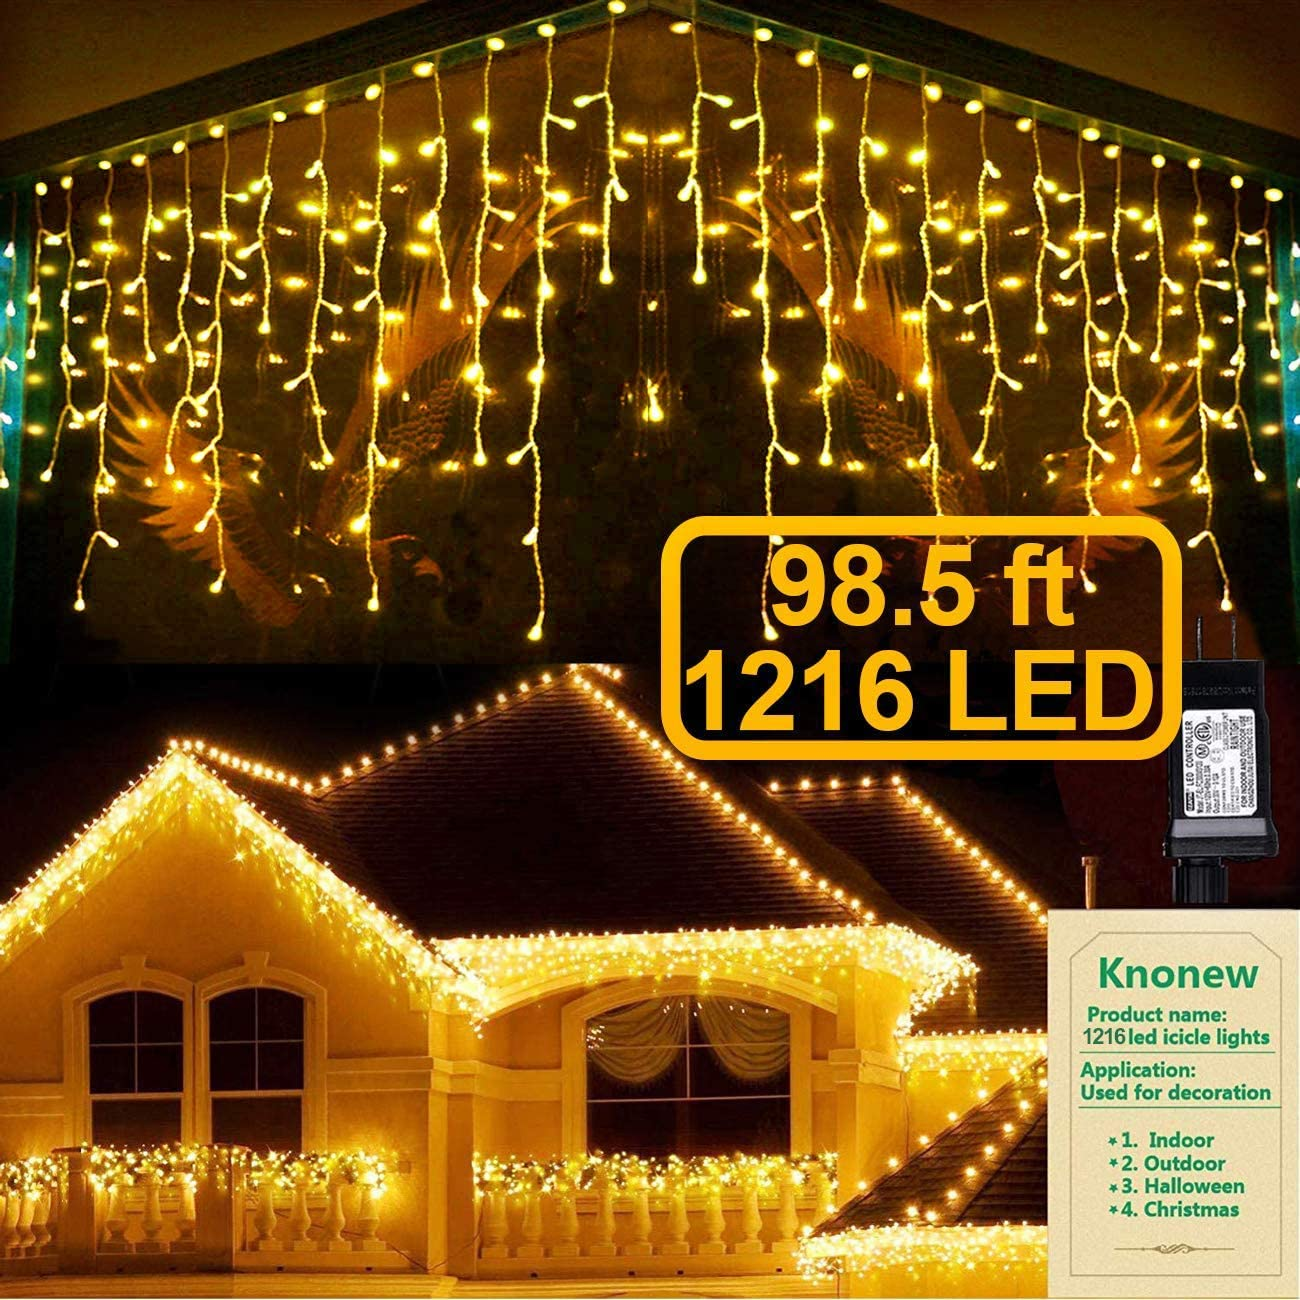 KNONEW LED Icicle Lights, 98ft 1216 LED, 8 Modes, Curtain Fairy Light Clear Wire LED String Decor for Christmas/Thanksgiving/Easter/Halloween/Party Backdrops Decorations (Warm White)